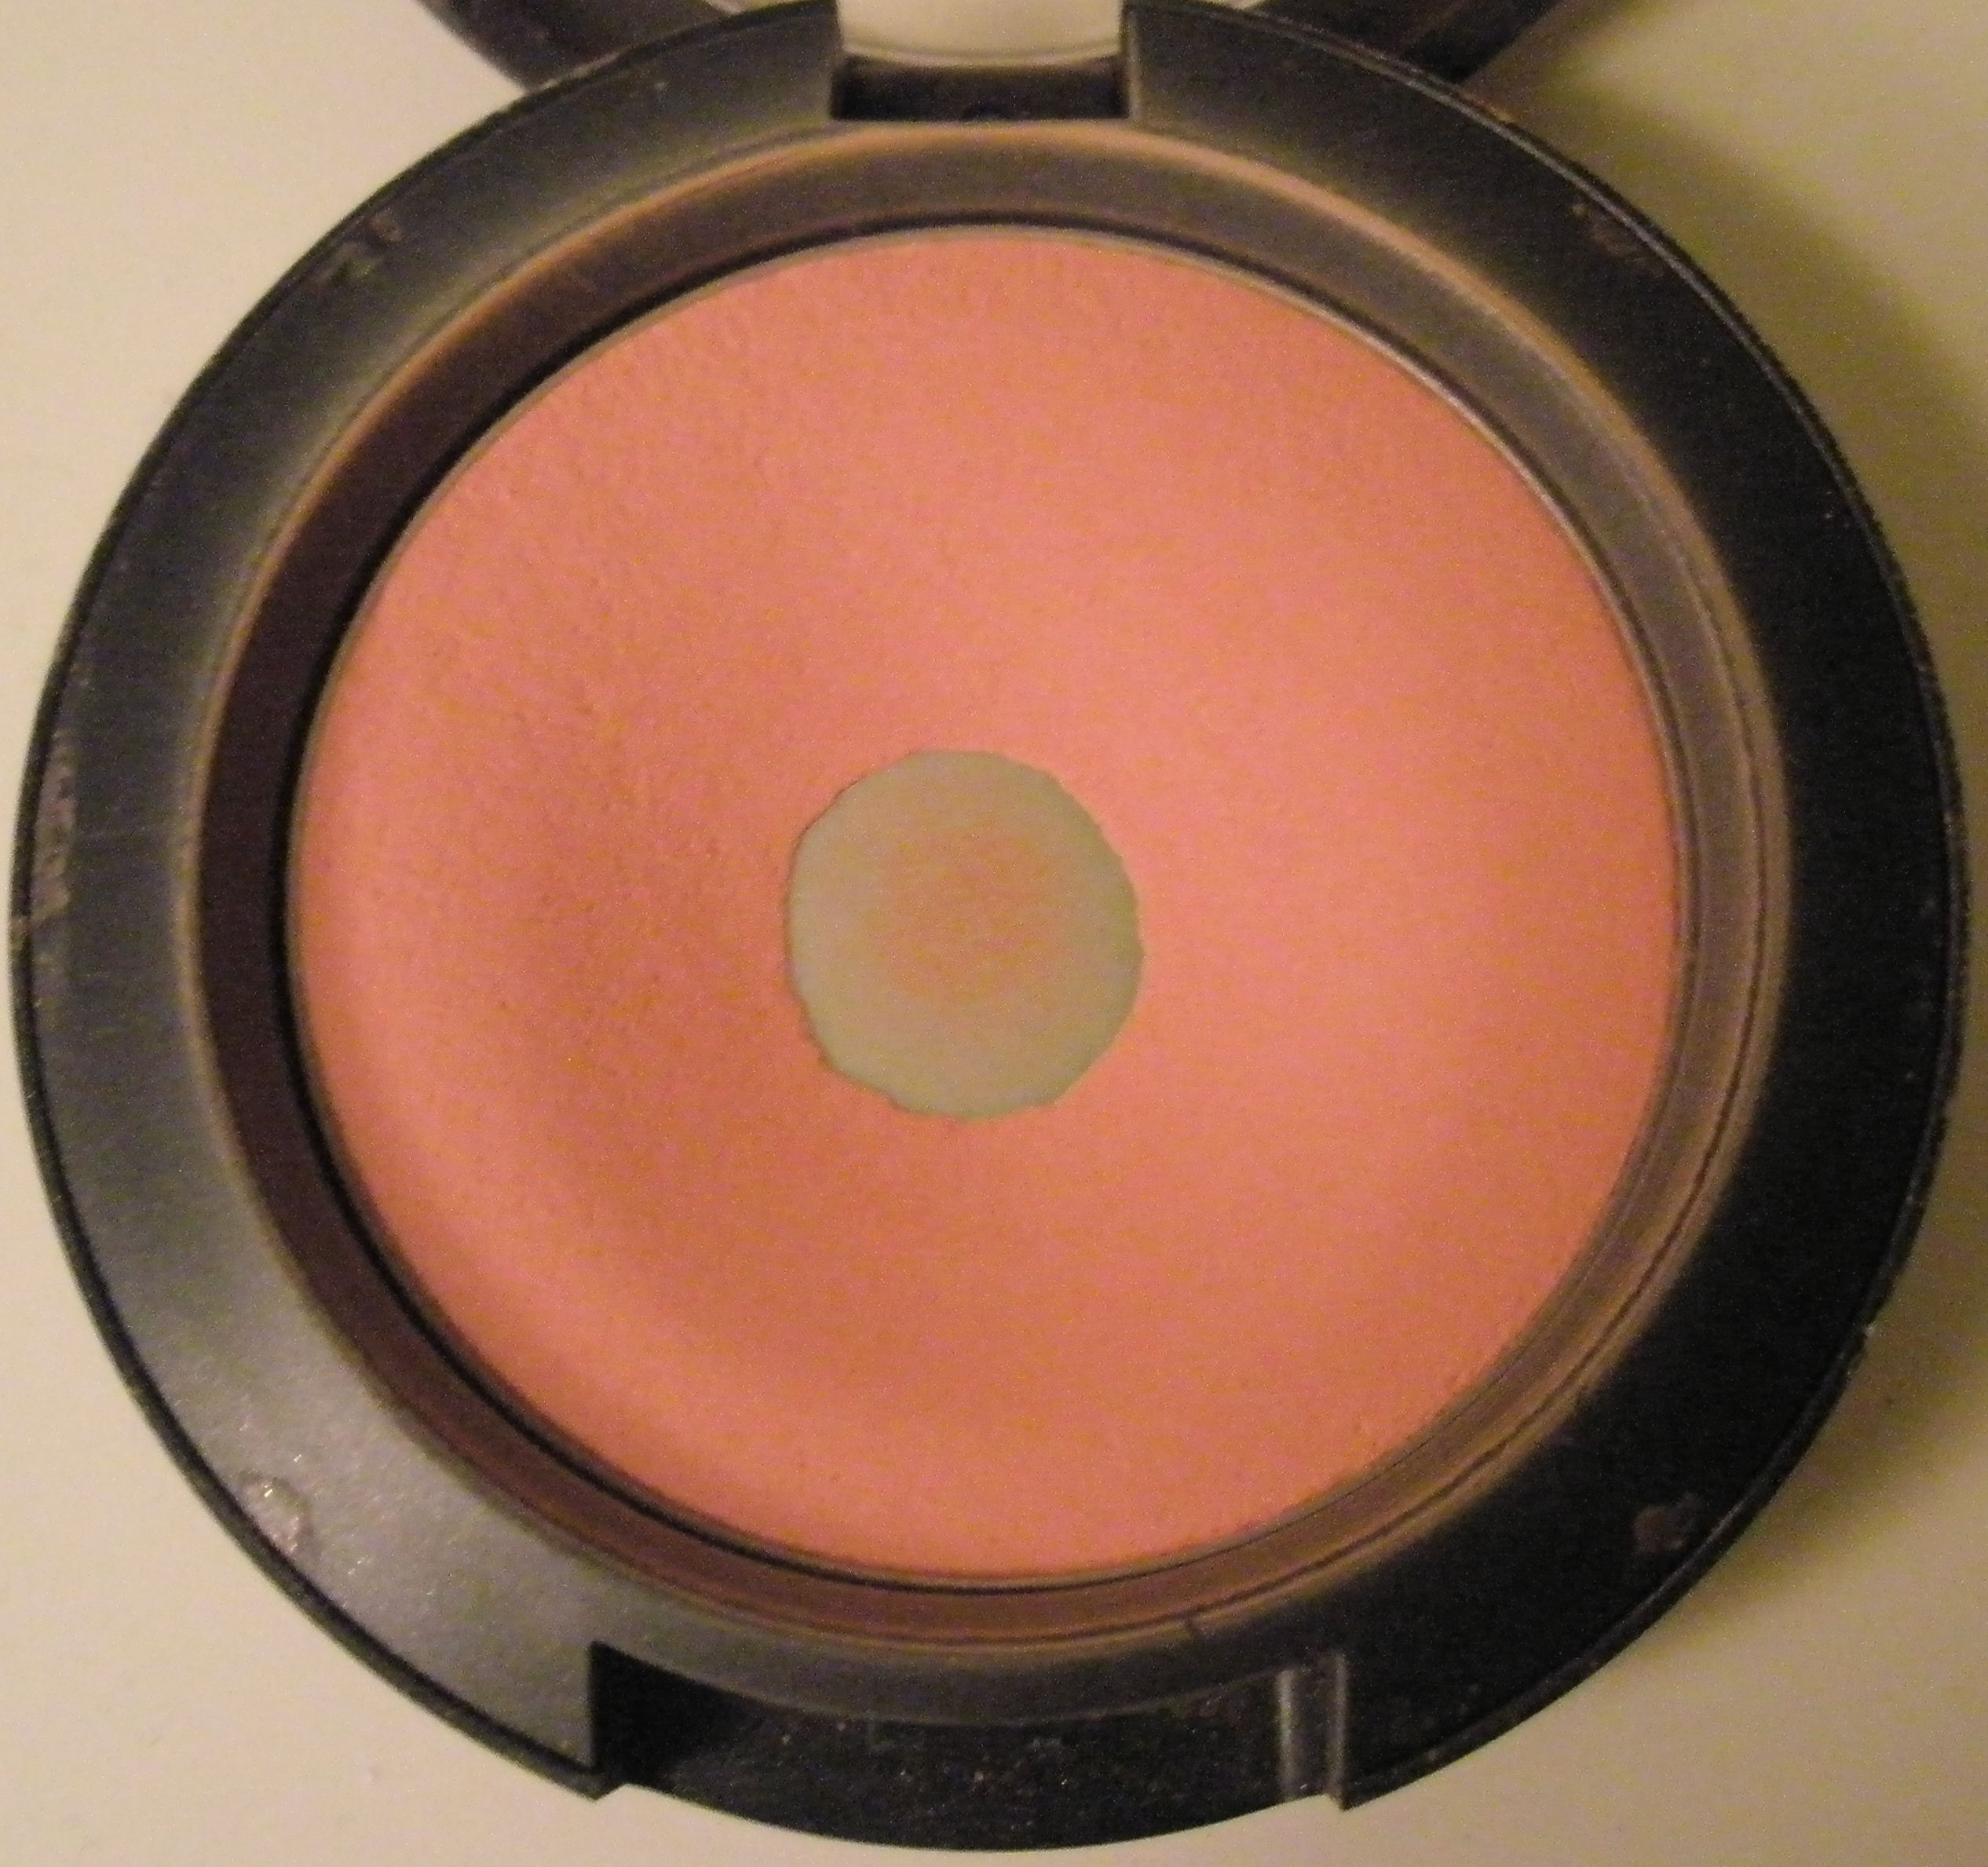 Bien connu ALL TIME FAVOURITE: MAC PEACHES POWDER BLUSH | Ah Sure Tis Lovely OI77